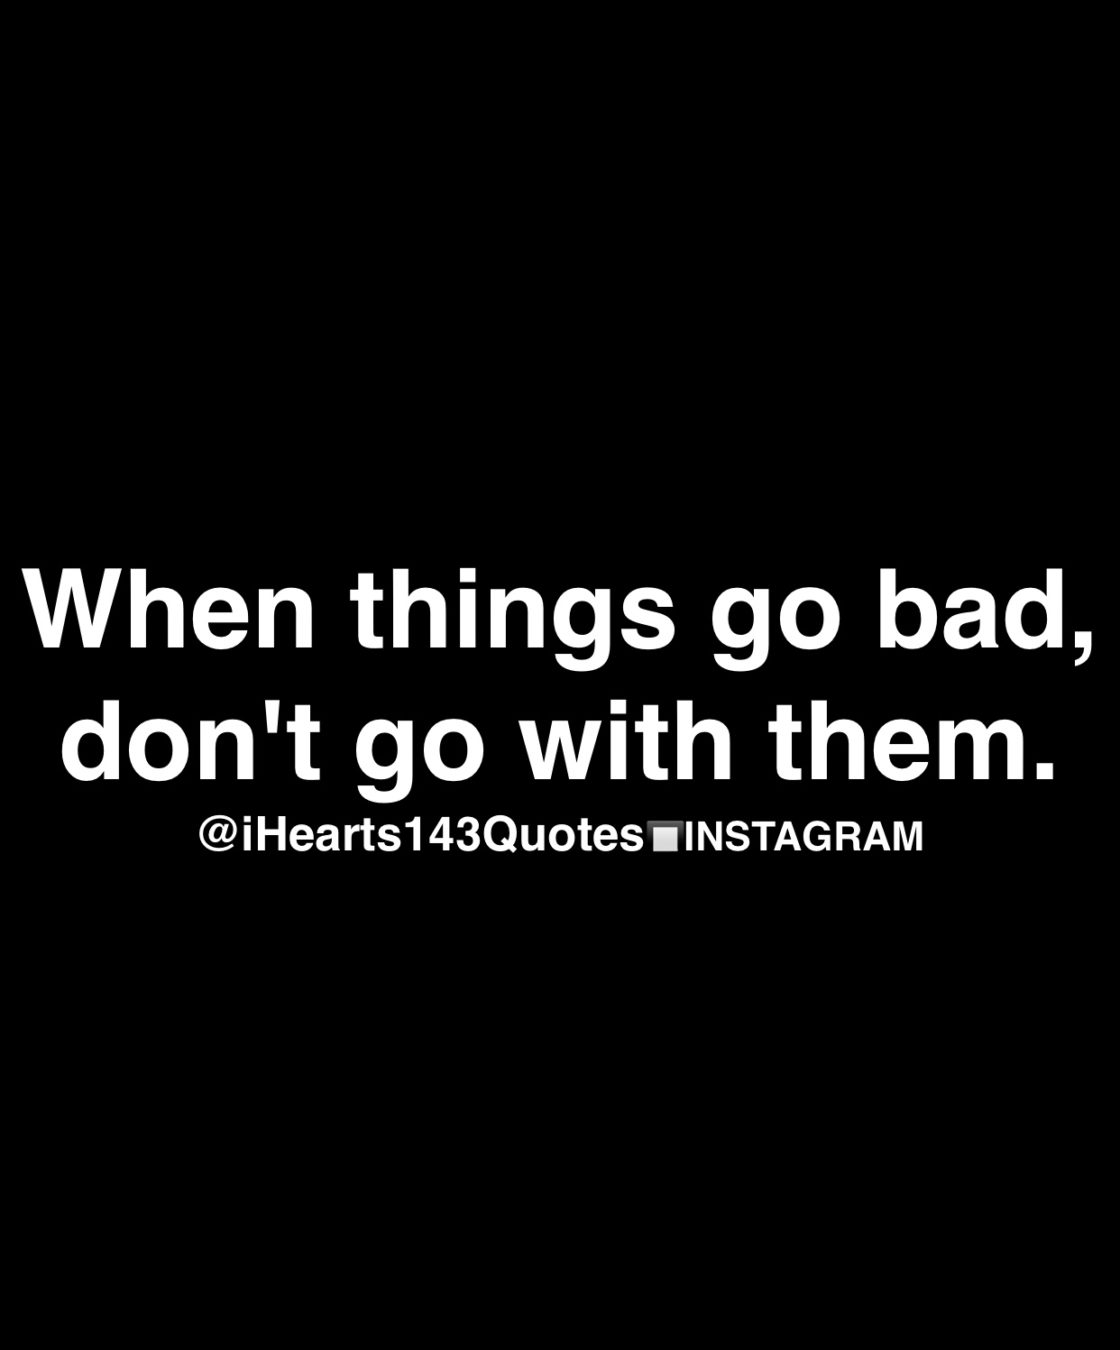 Daily Motivational Quotes Ihearts143quotes